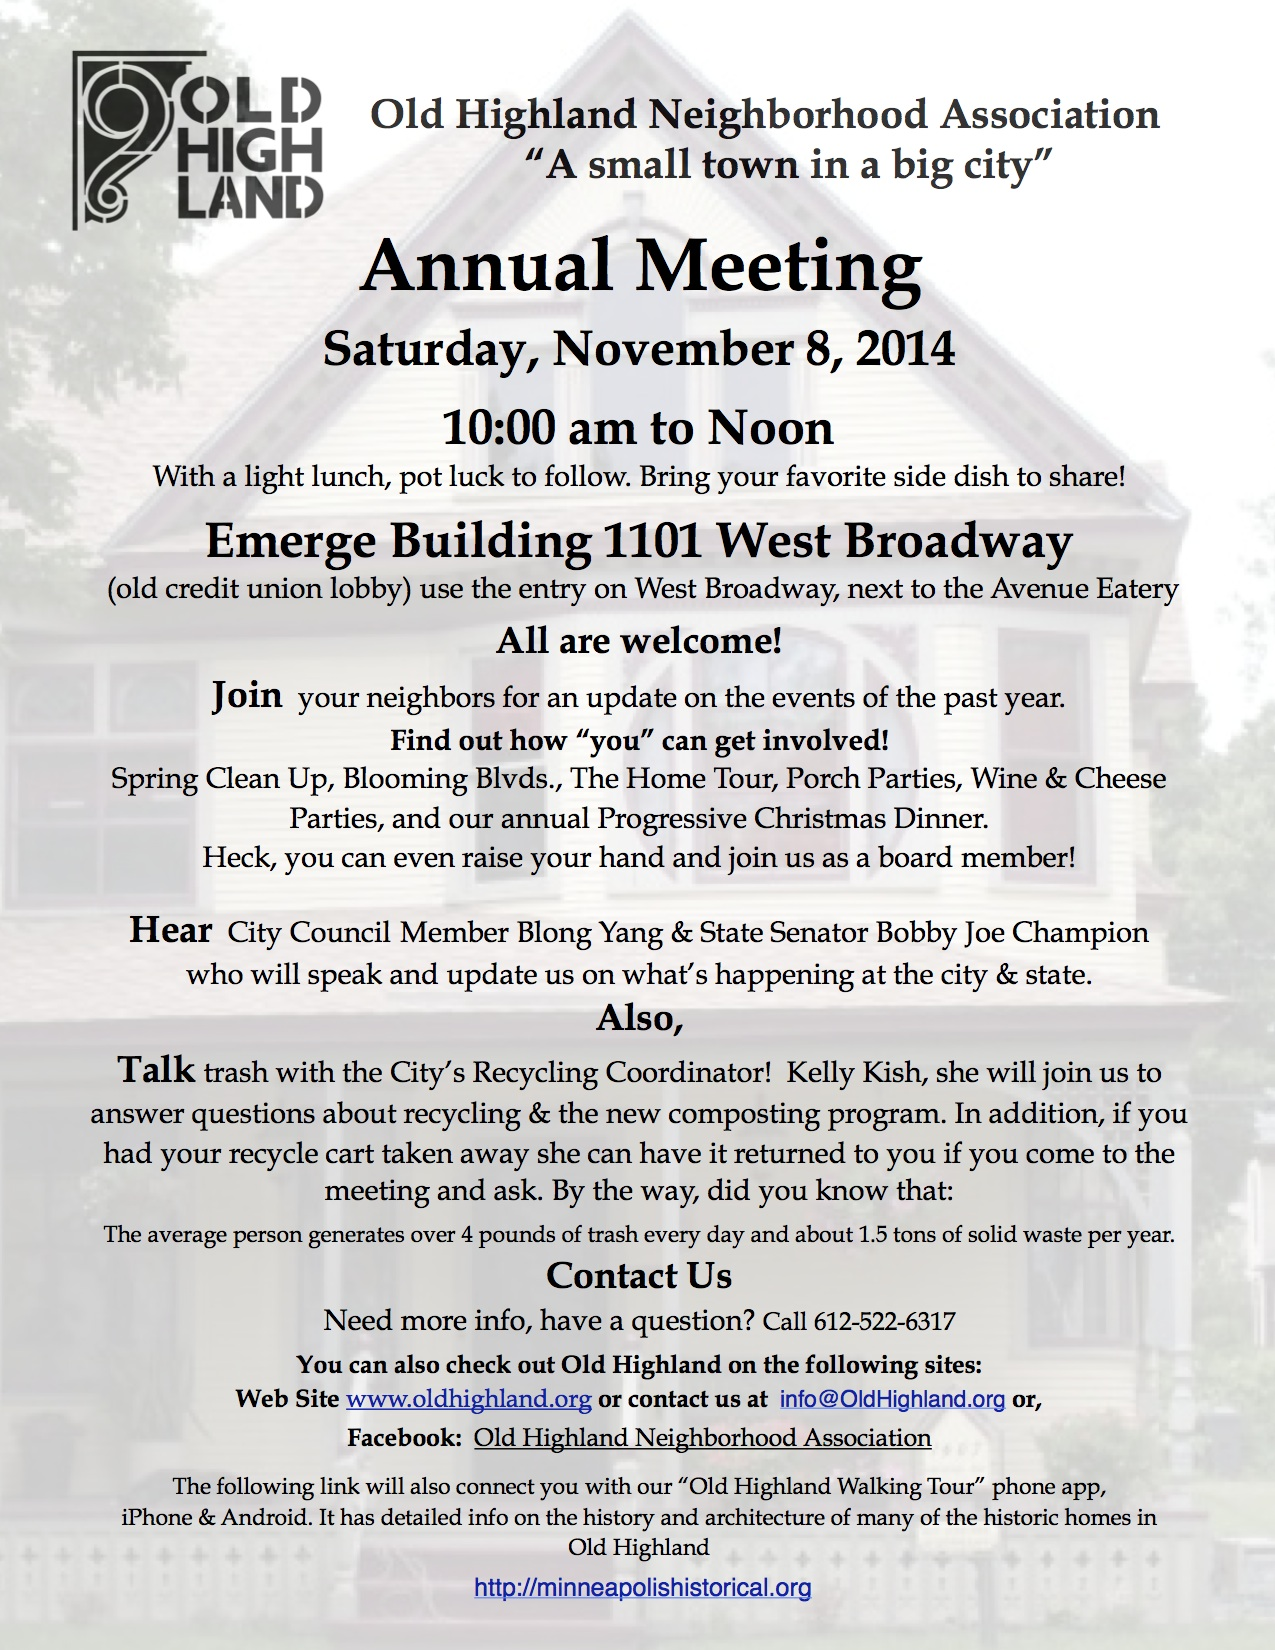 Annual Meeting Flyer 2014